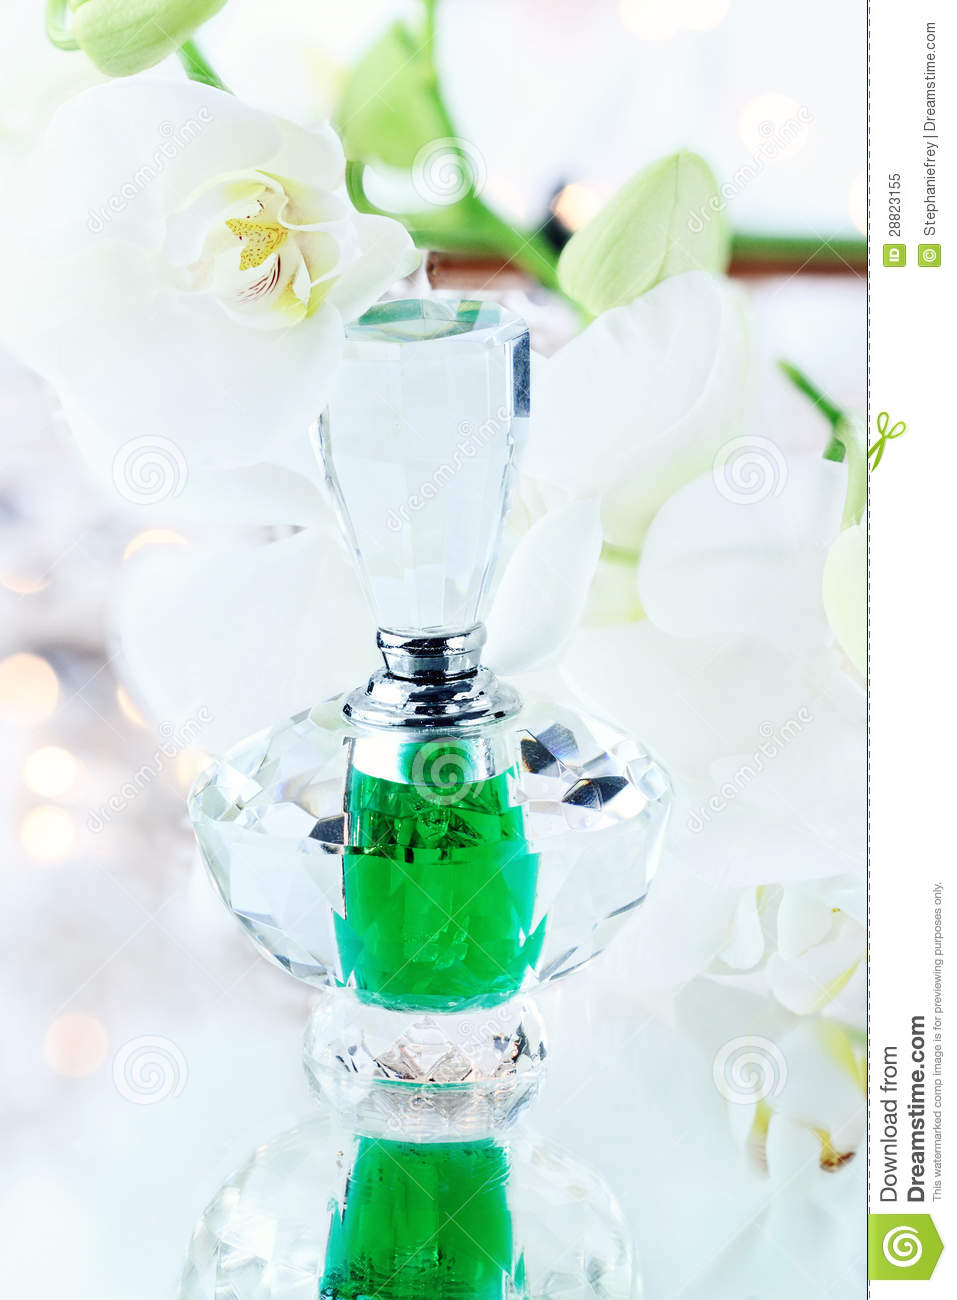 White Orchid and Perfume or Essence